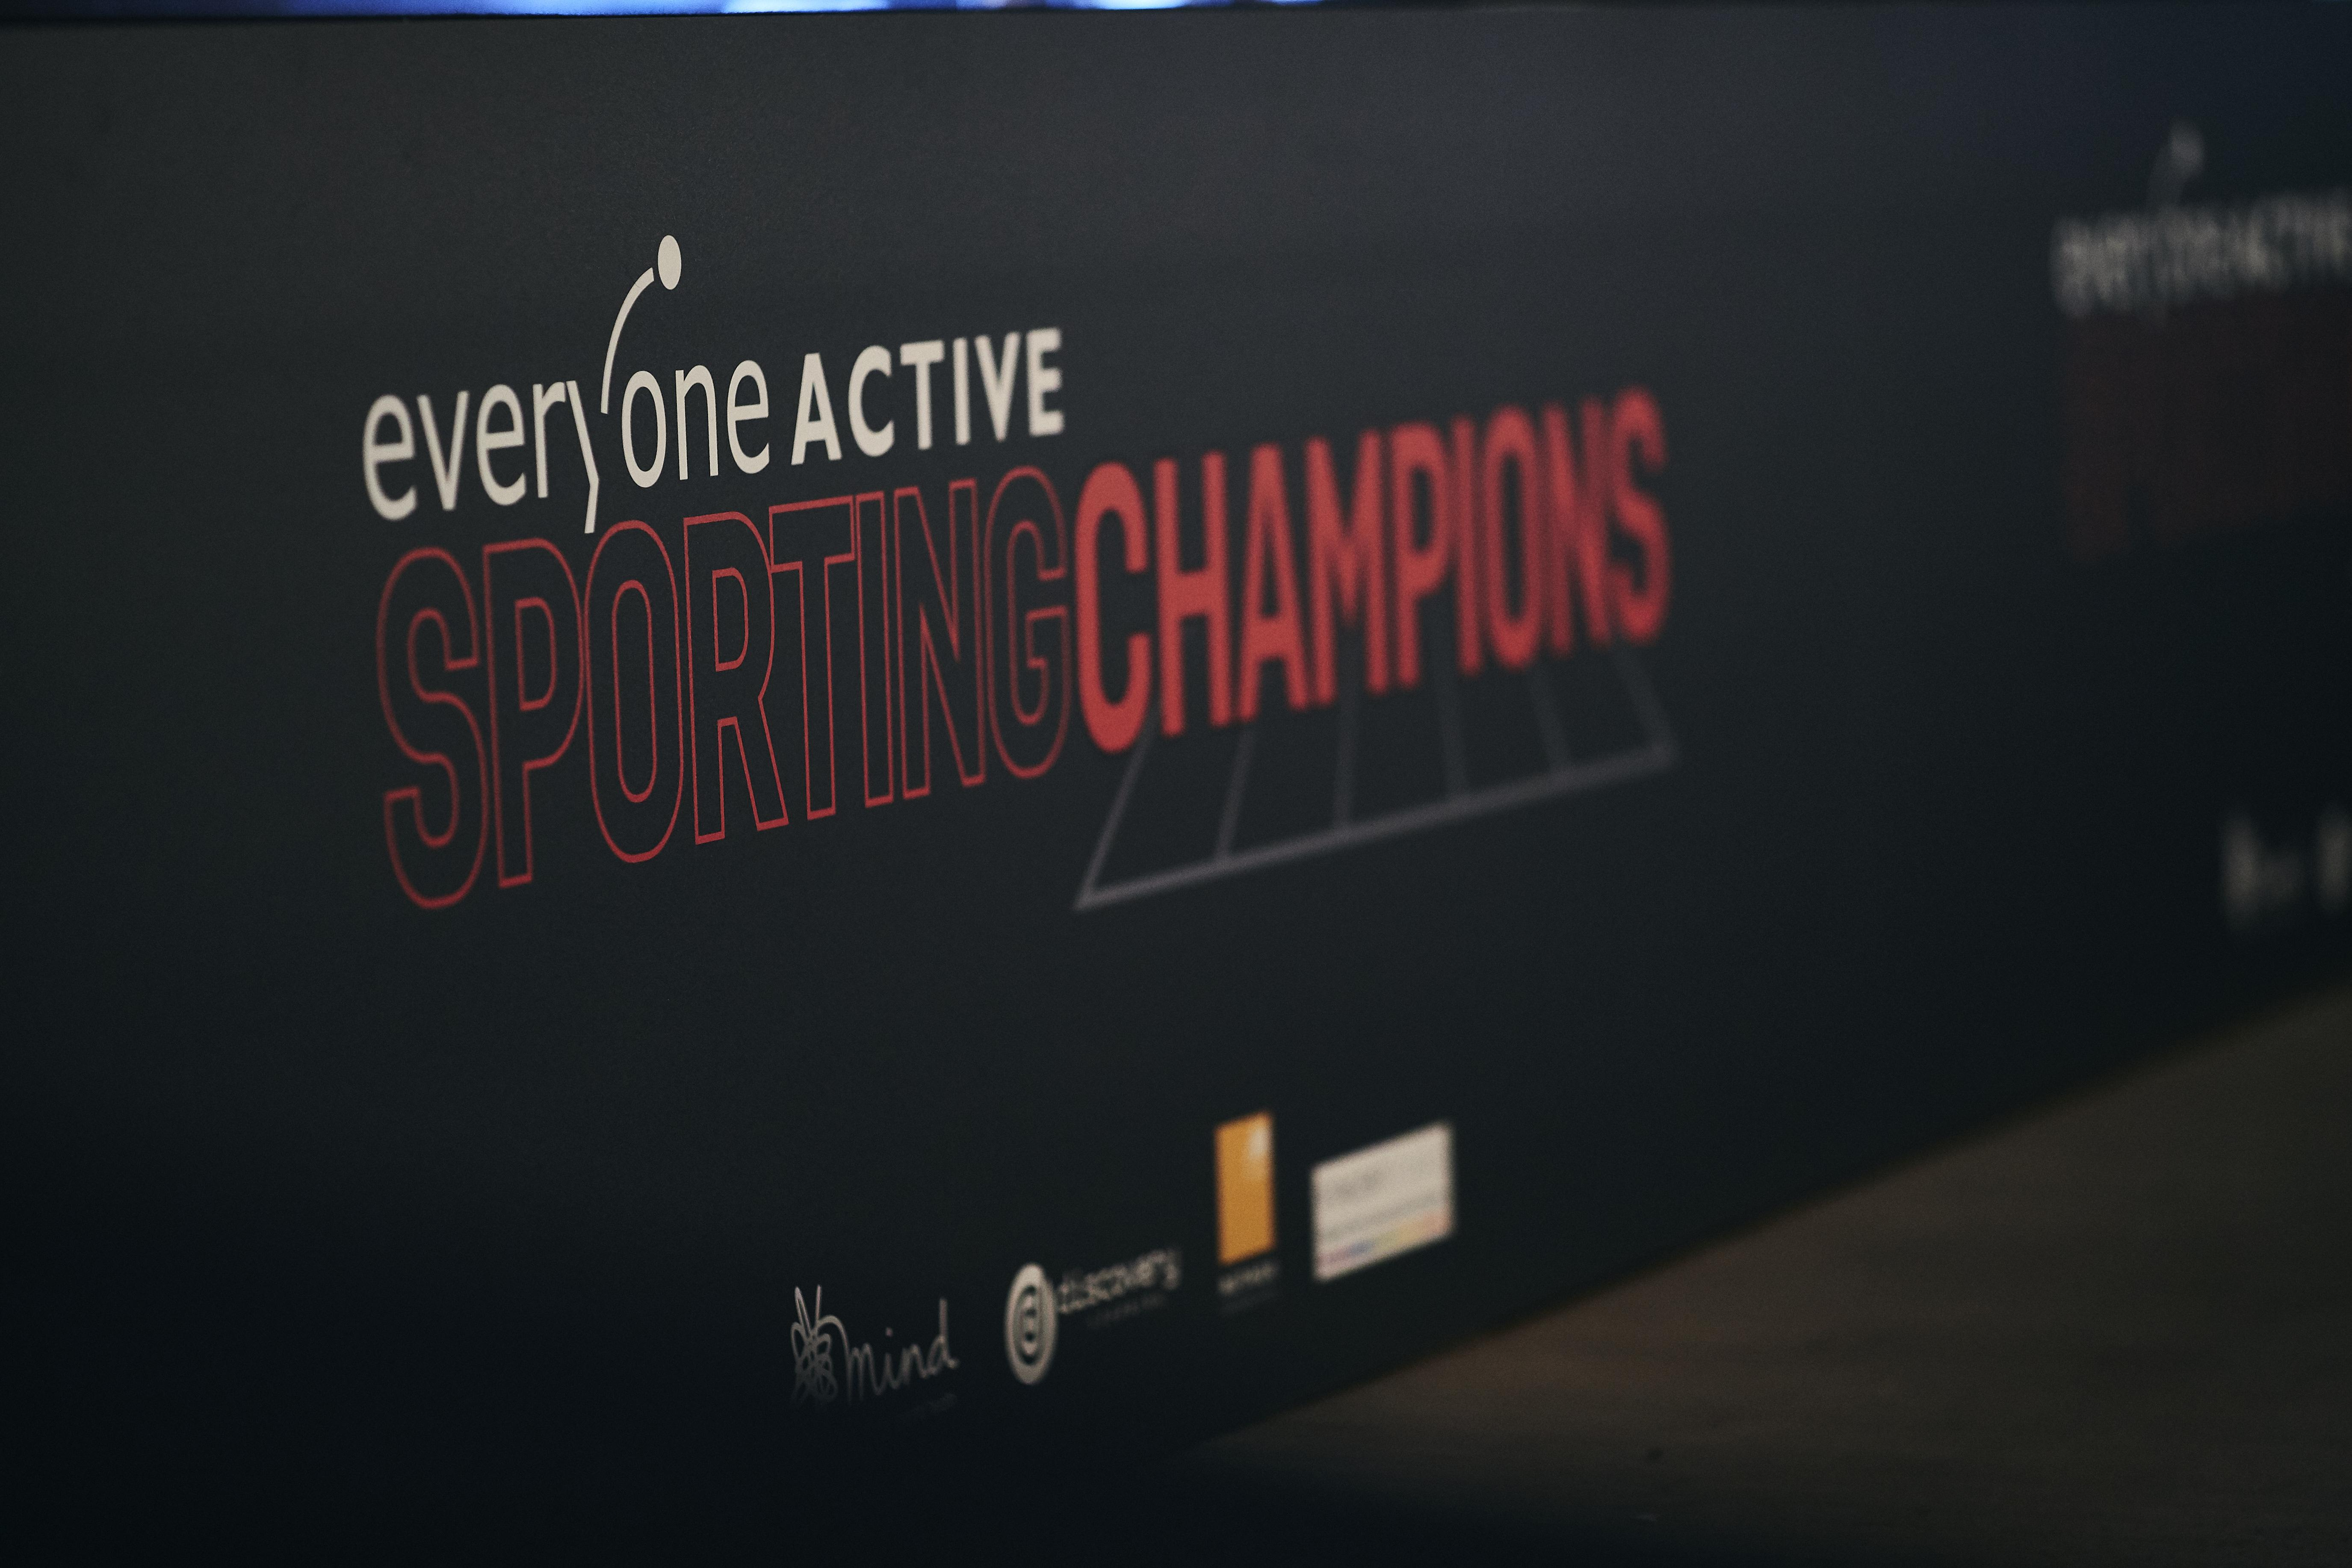 Everyone Active Sporting Champions logo